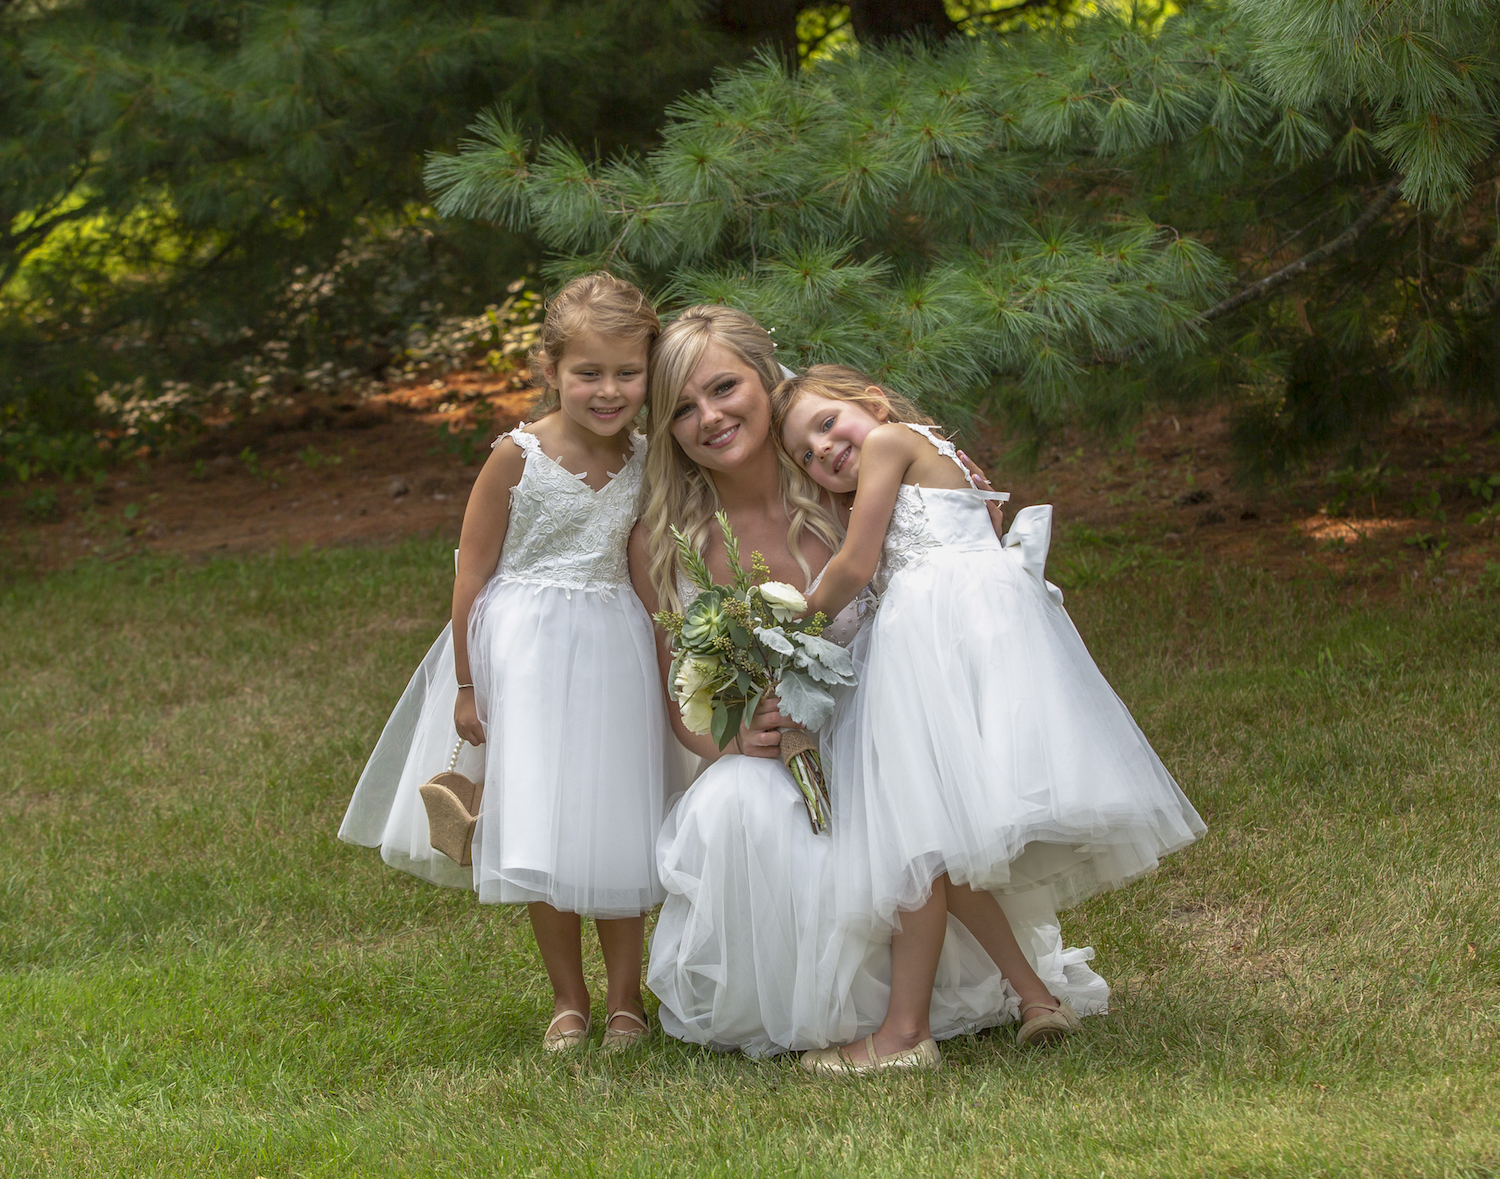 Cindyrellas Garden outdoor wedding ceremony by a private lake with wooded backdrops, flower girls with the bride